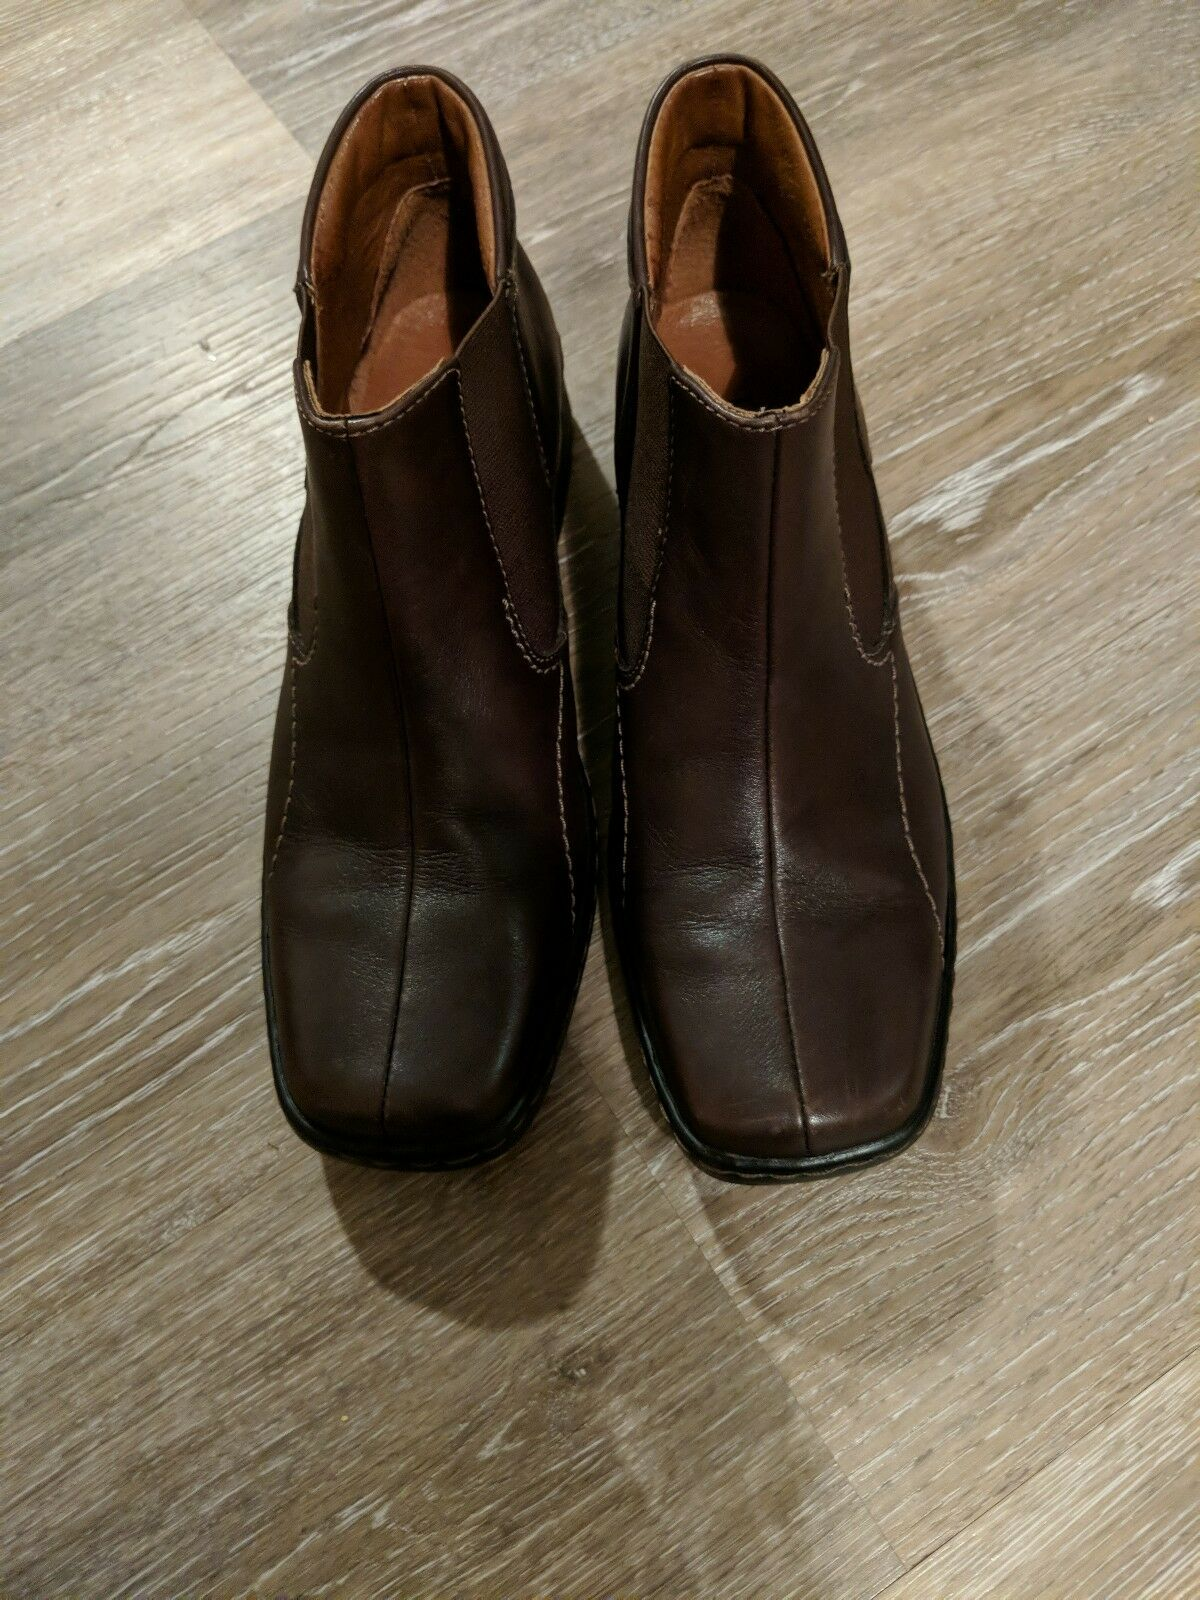 JOSEF SEIBEL Womens Slip On Ankle Boots Brown Leather Elastic Sz 37  6.5 US